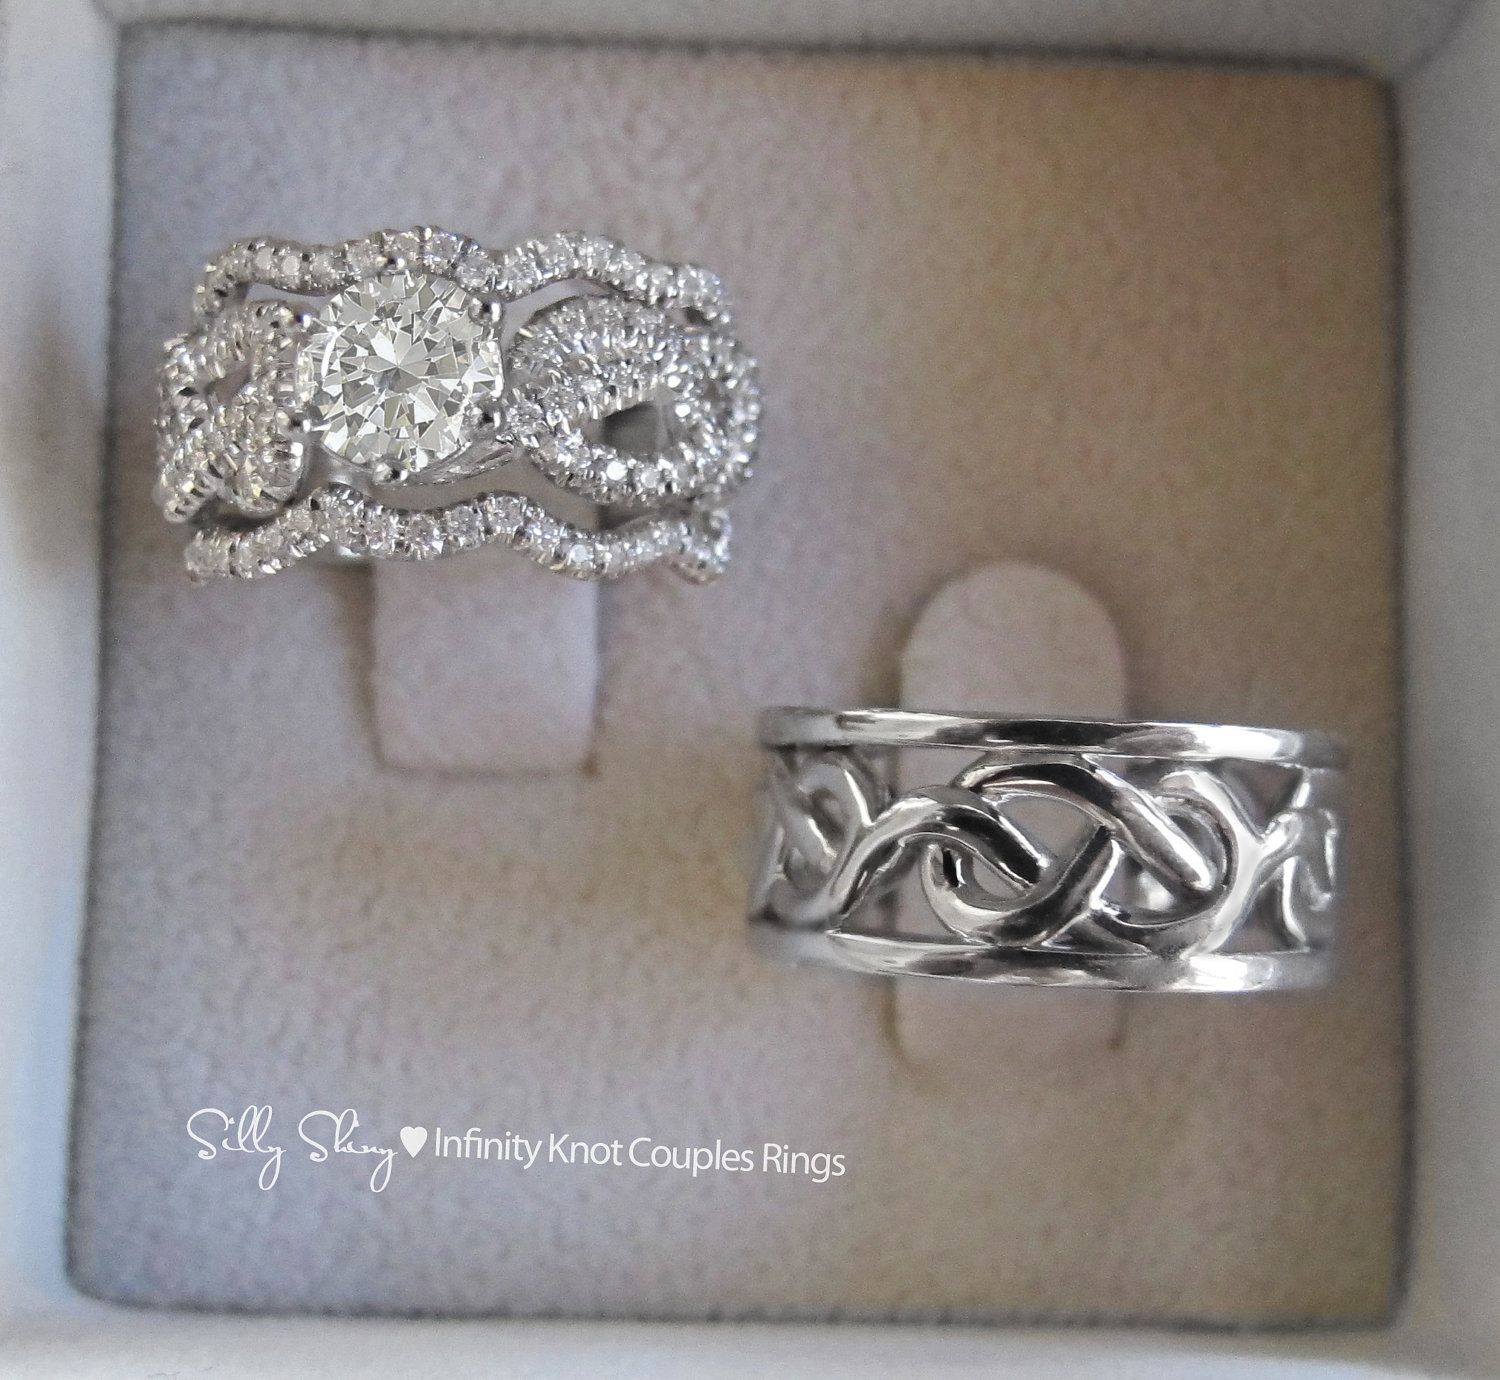 Couples Infinity Knot Wedding Bands Set Engagement Ring With